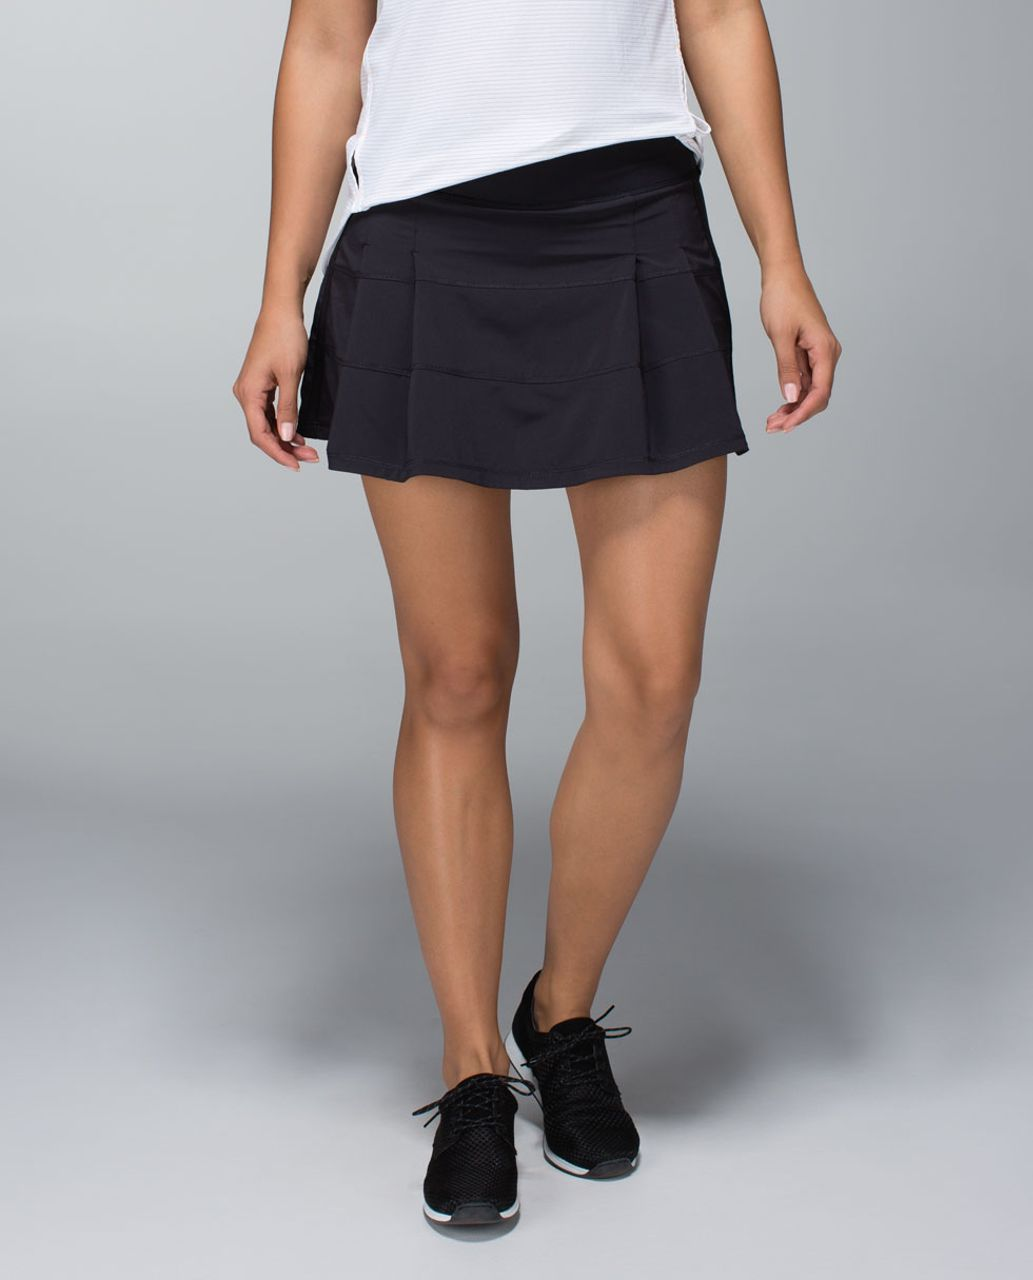 Lululemon Pace Rival Skirt (Tall) *4-way Stretch - Black